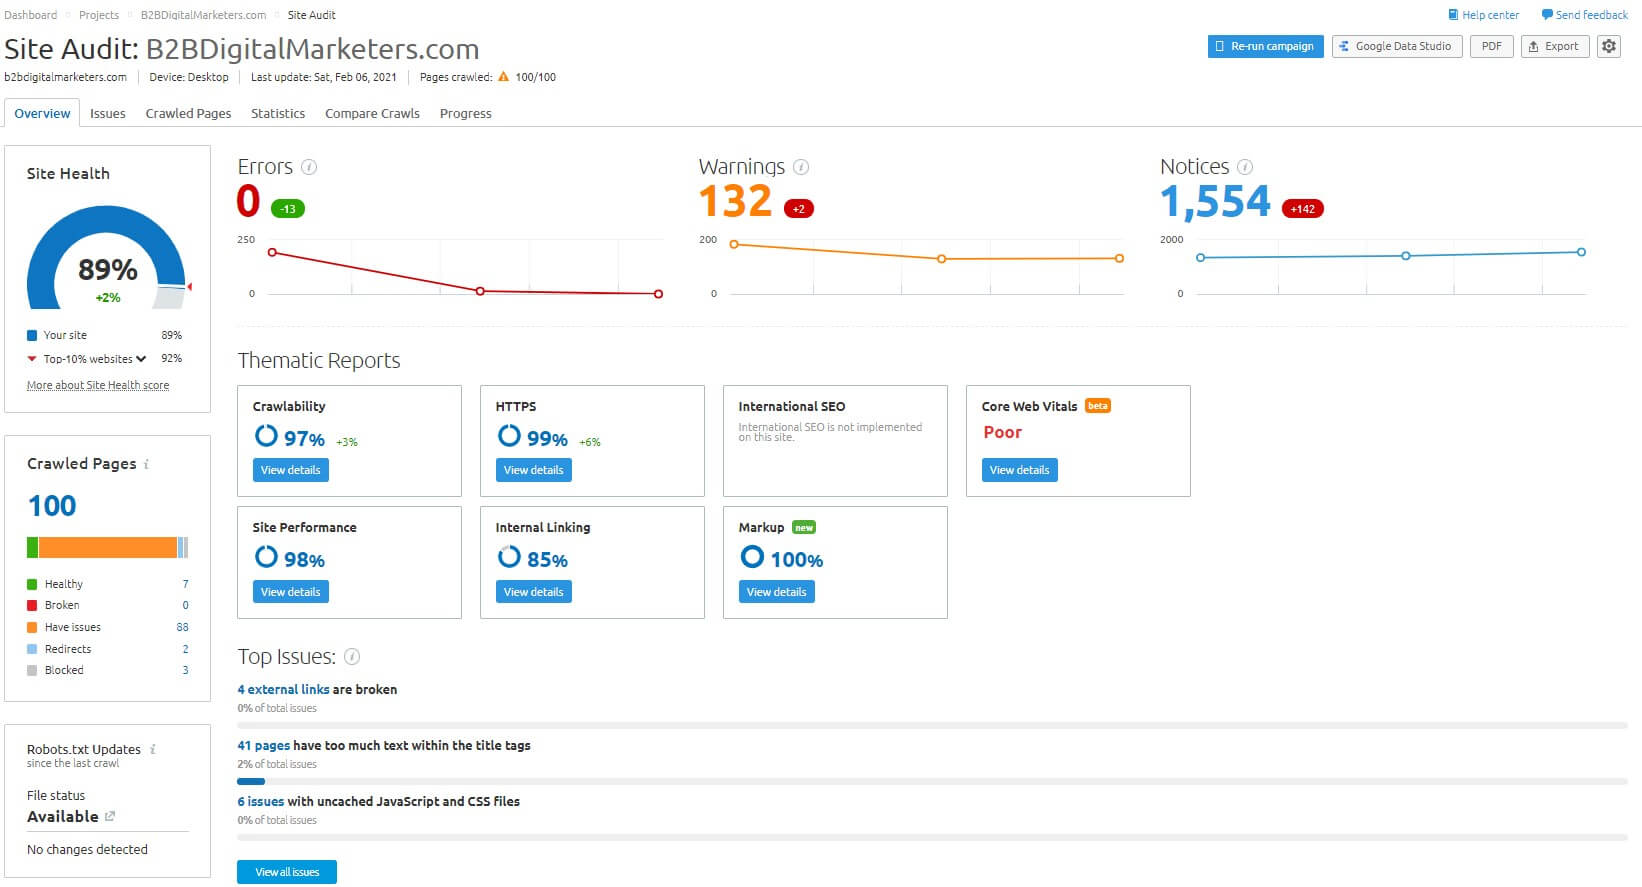 semrush site audit dashboard to check your site health